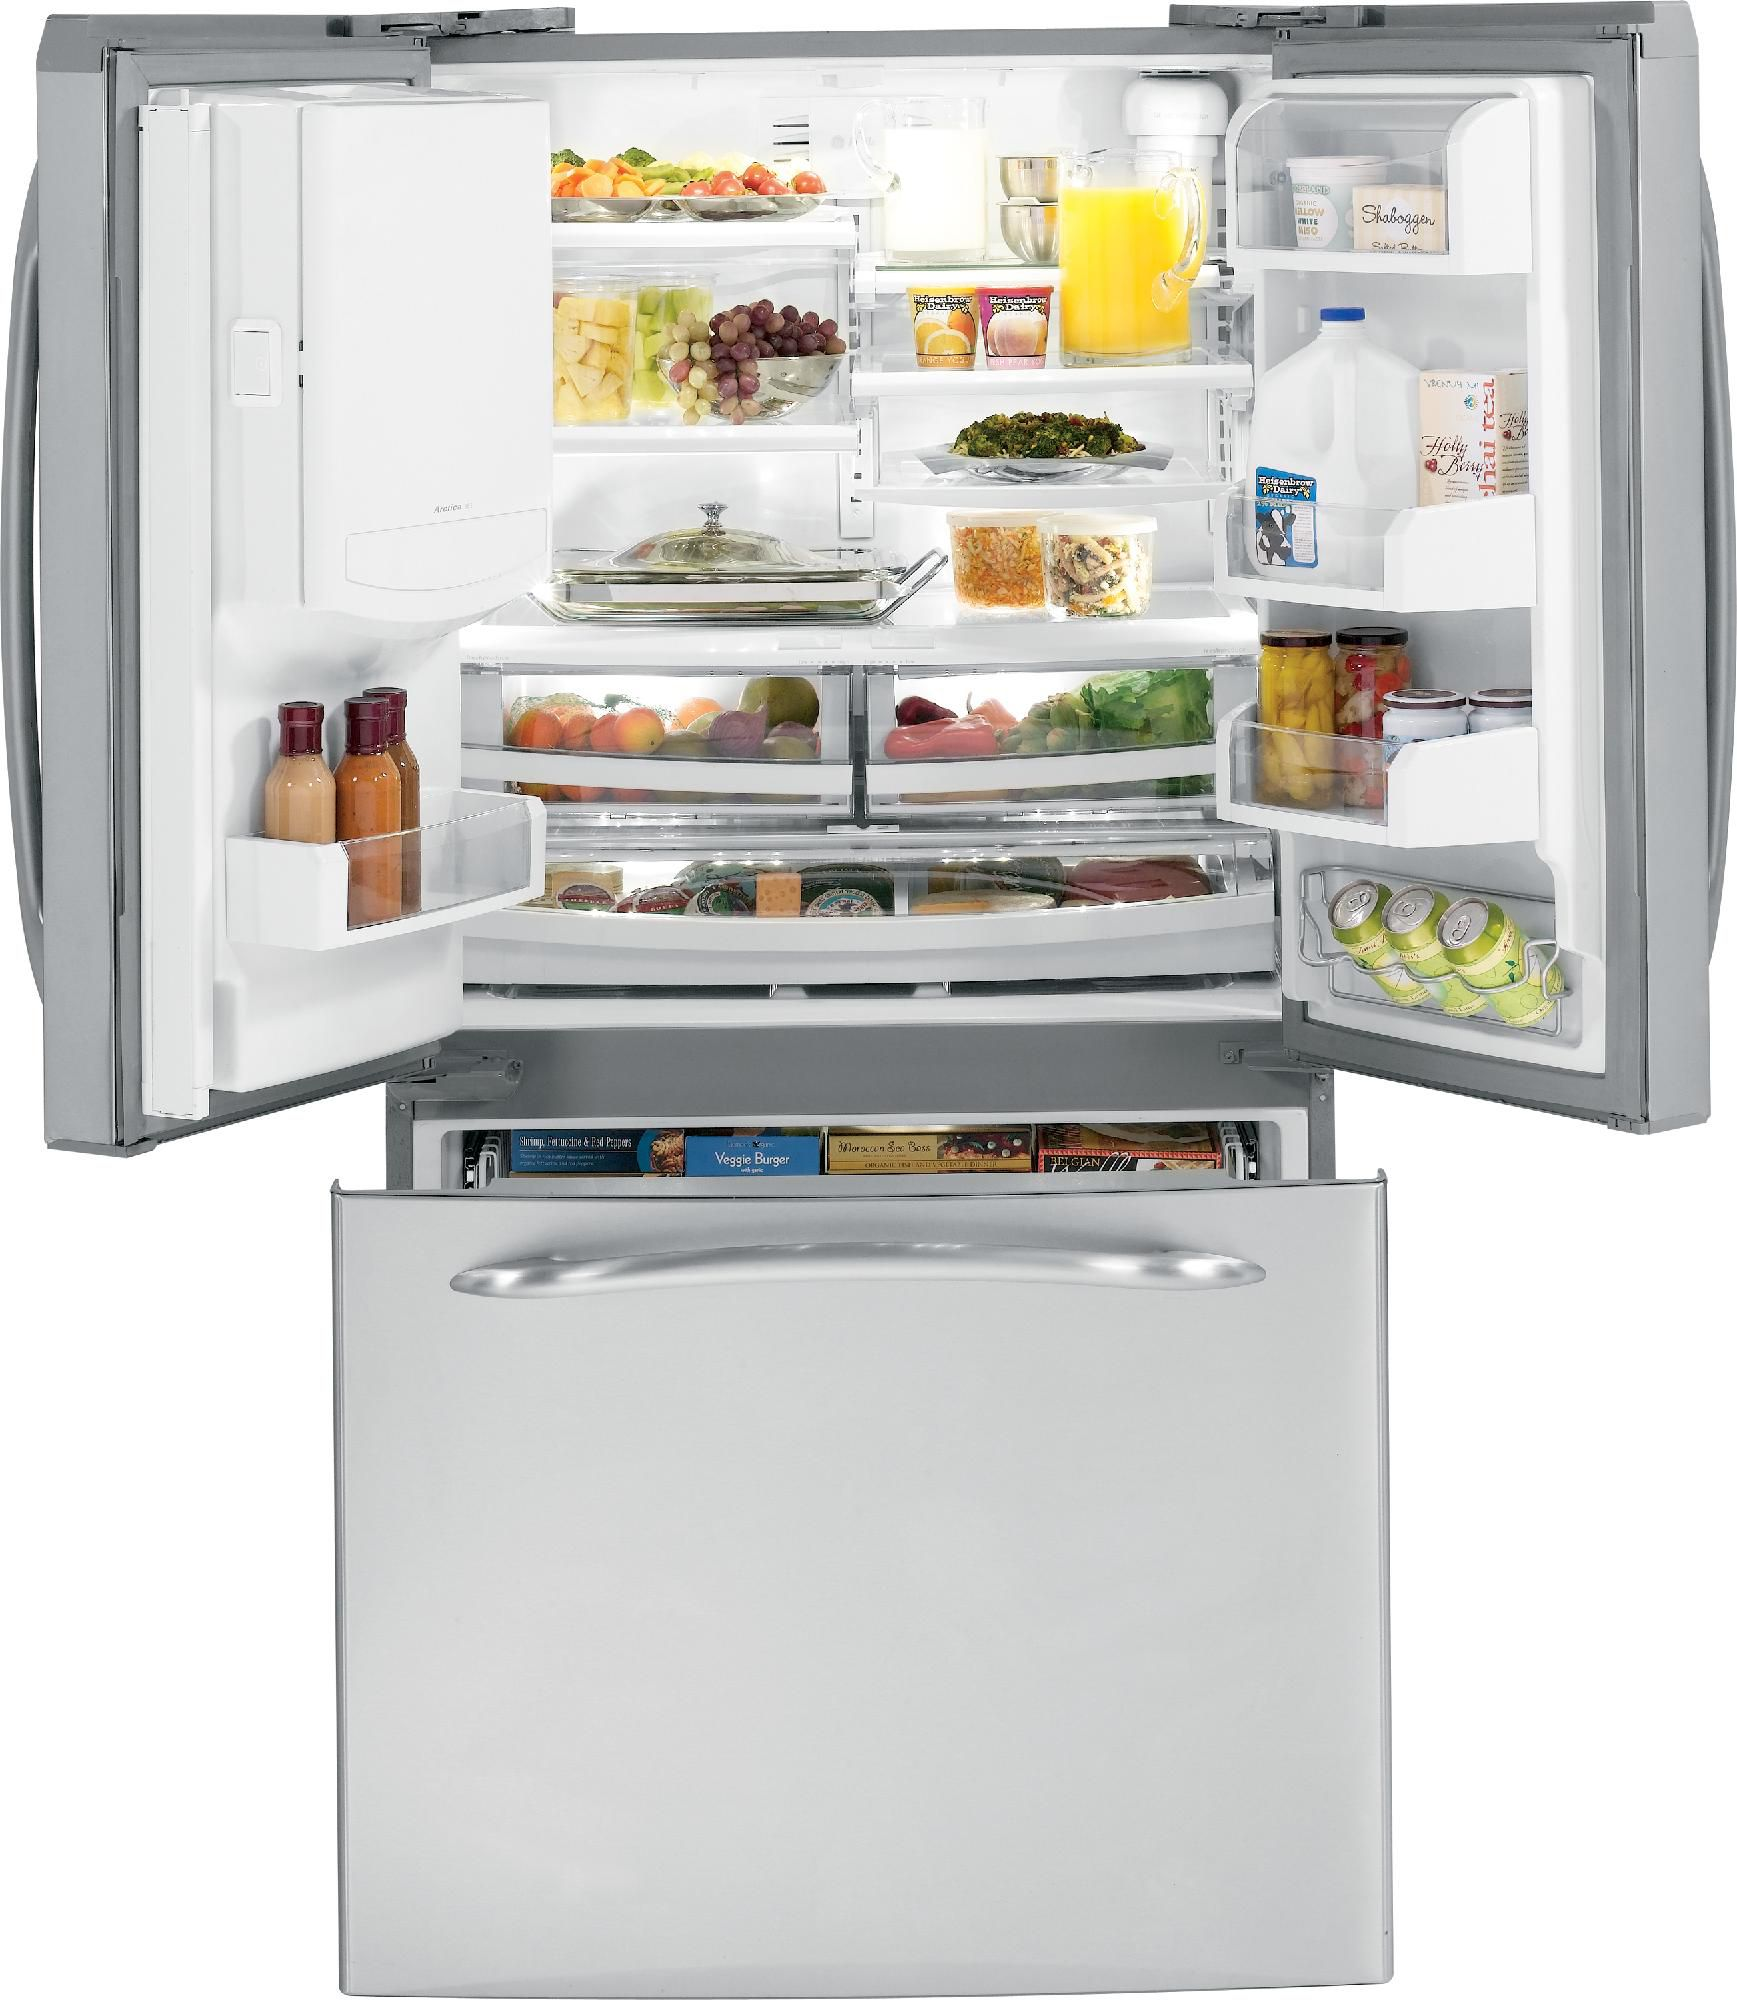 GE 25.1 cu. ft. French Door Bottom-Freezer Refrigerator